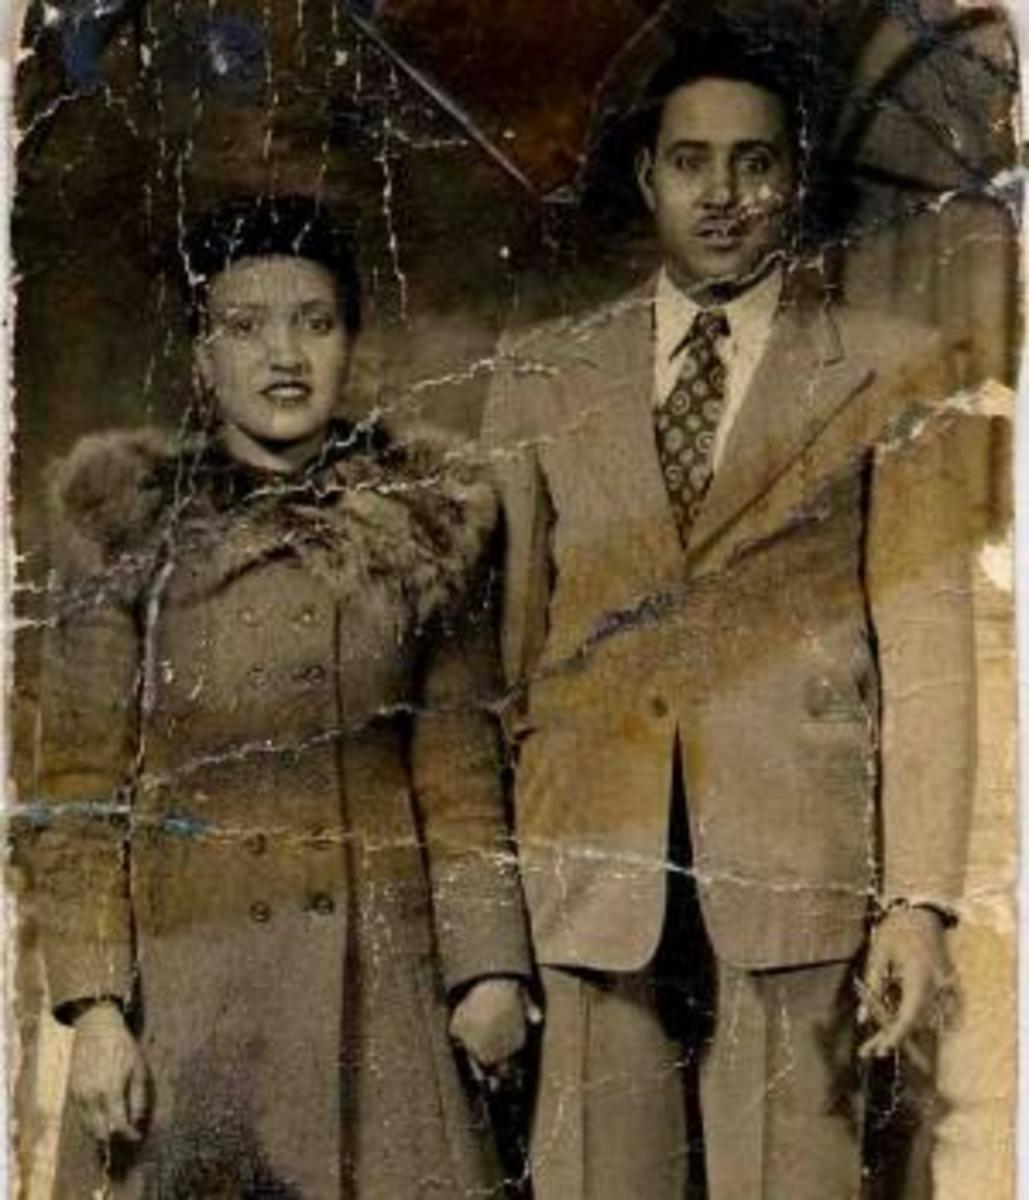 Henrietta with her husband, David. (Credit: Lacks Family)